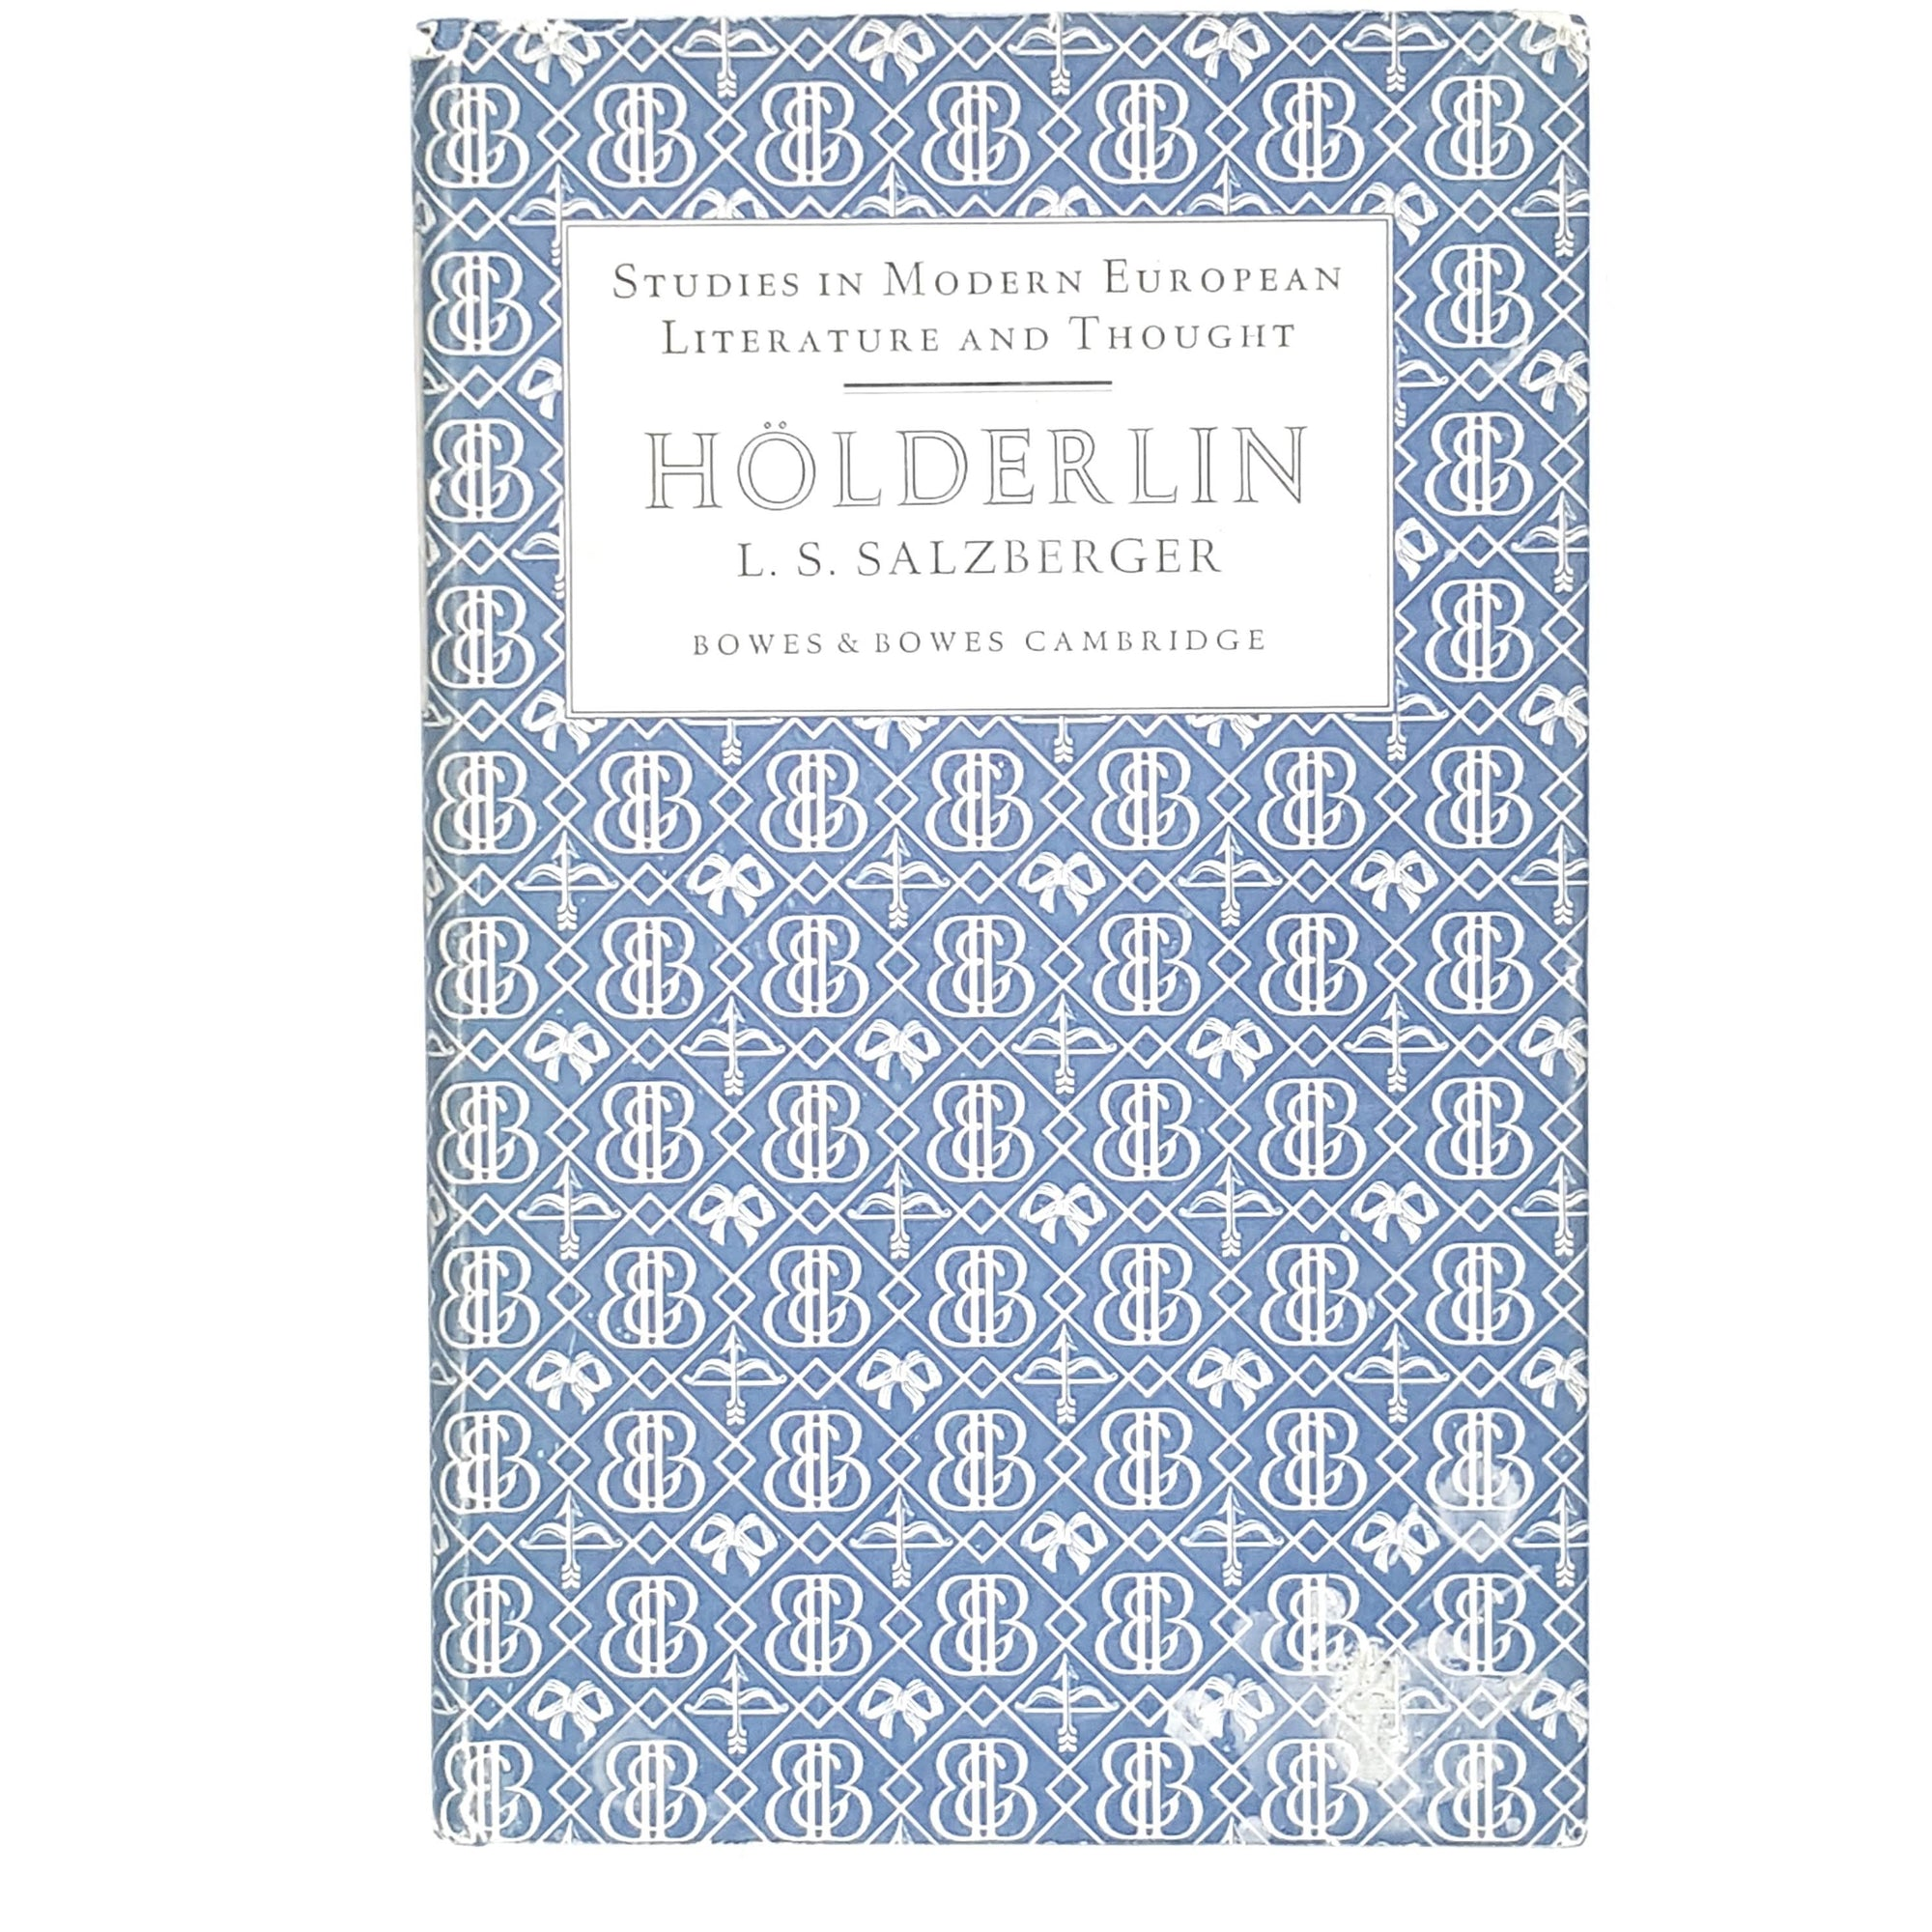 First Edition Hölderlin Studies in Modern European Literature and Thought by L. S. Salzberger 1952